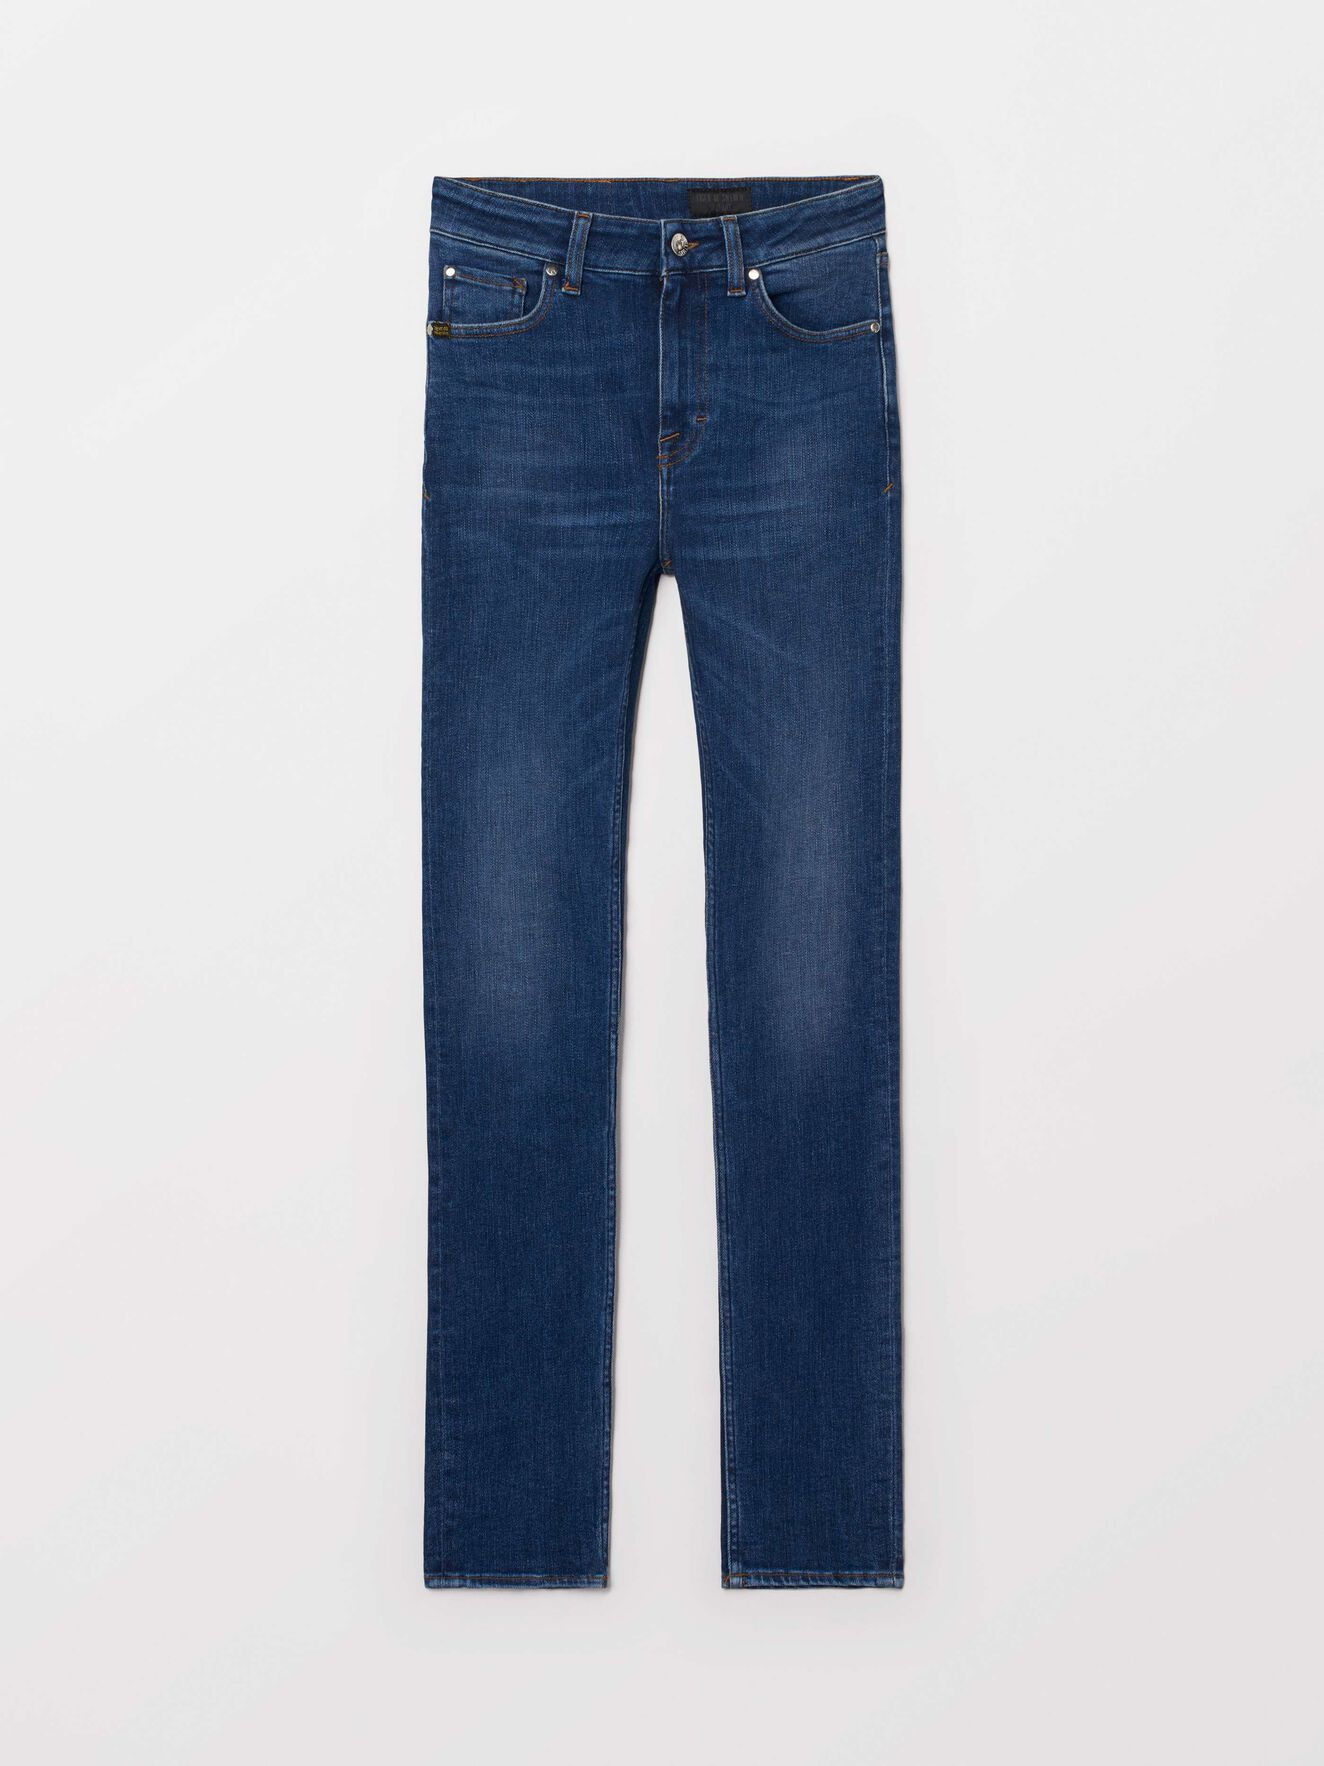 Shelly Jeans in Medium Blue from Tiger of Sweden